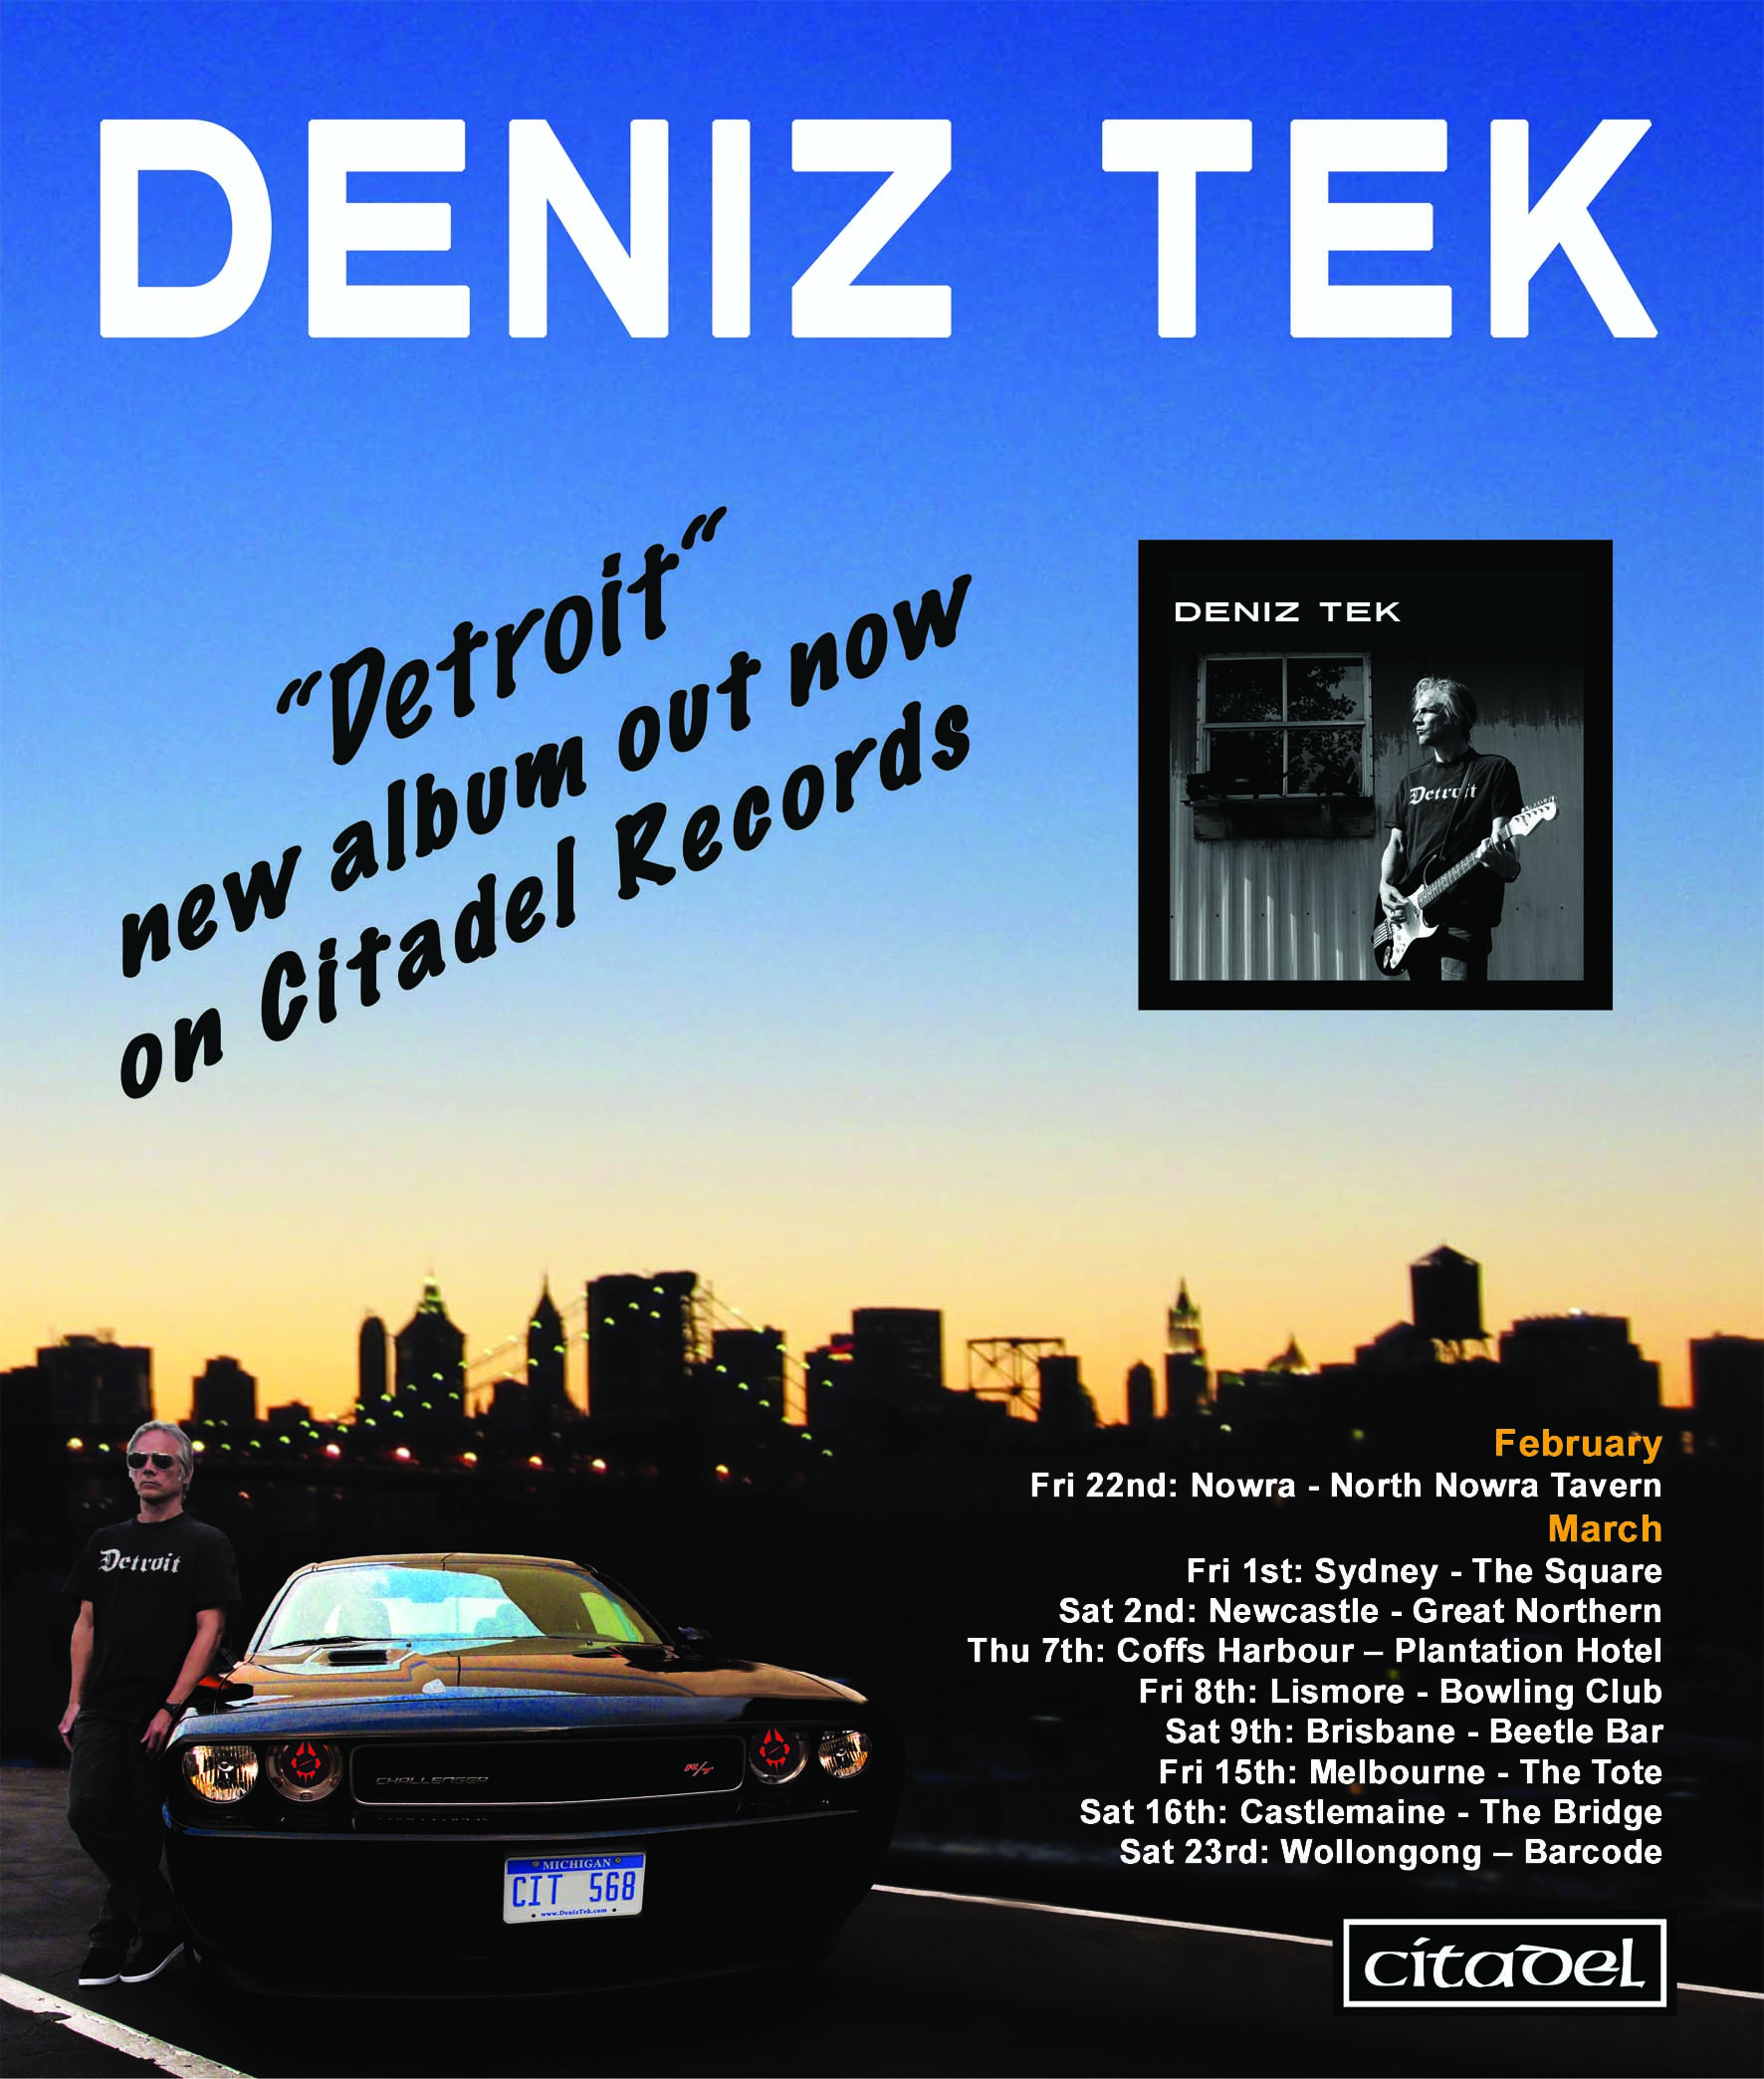 Deniz Tek Poster_Dates_updated.jpg